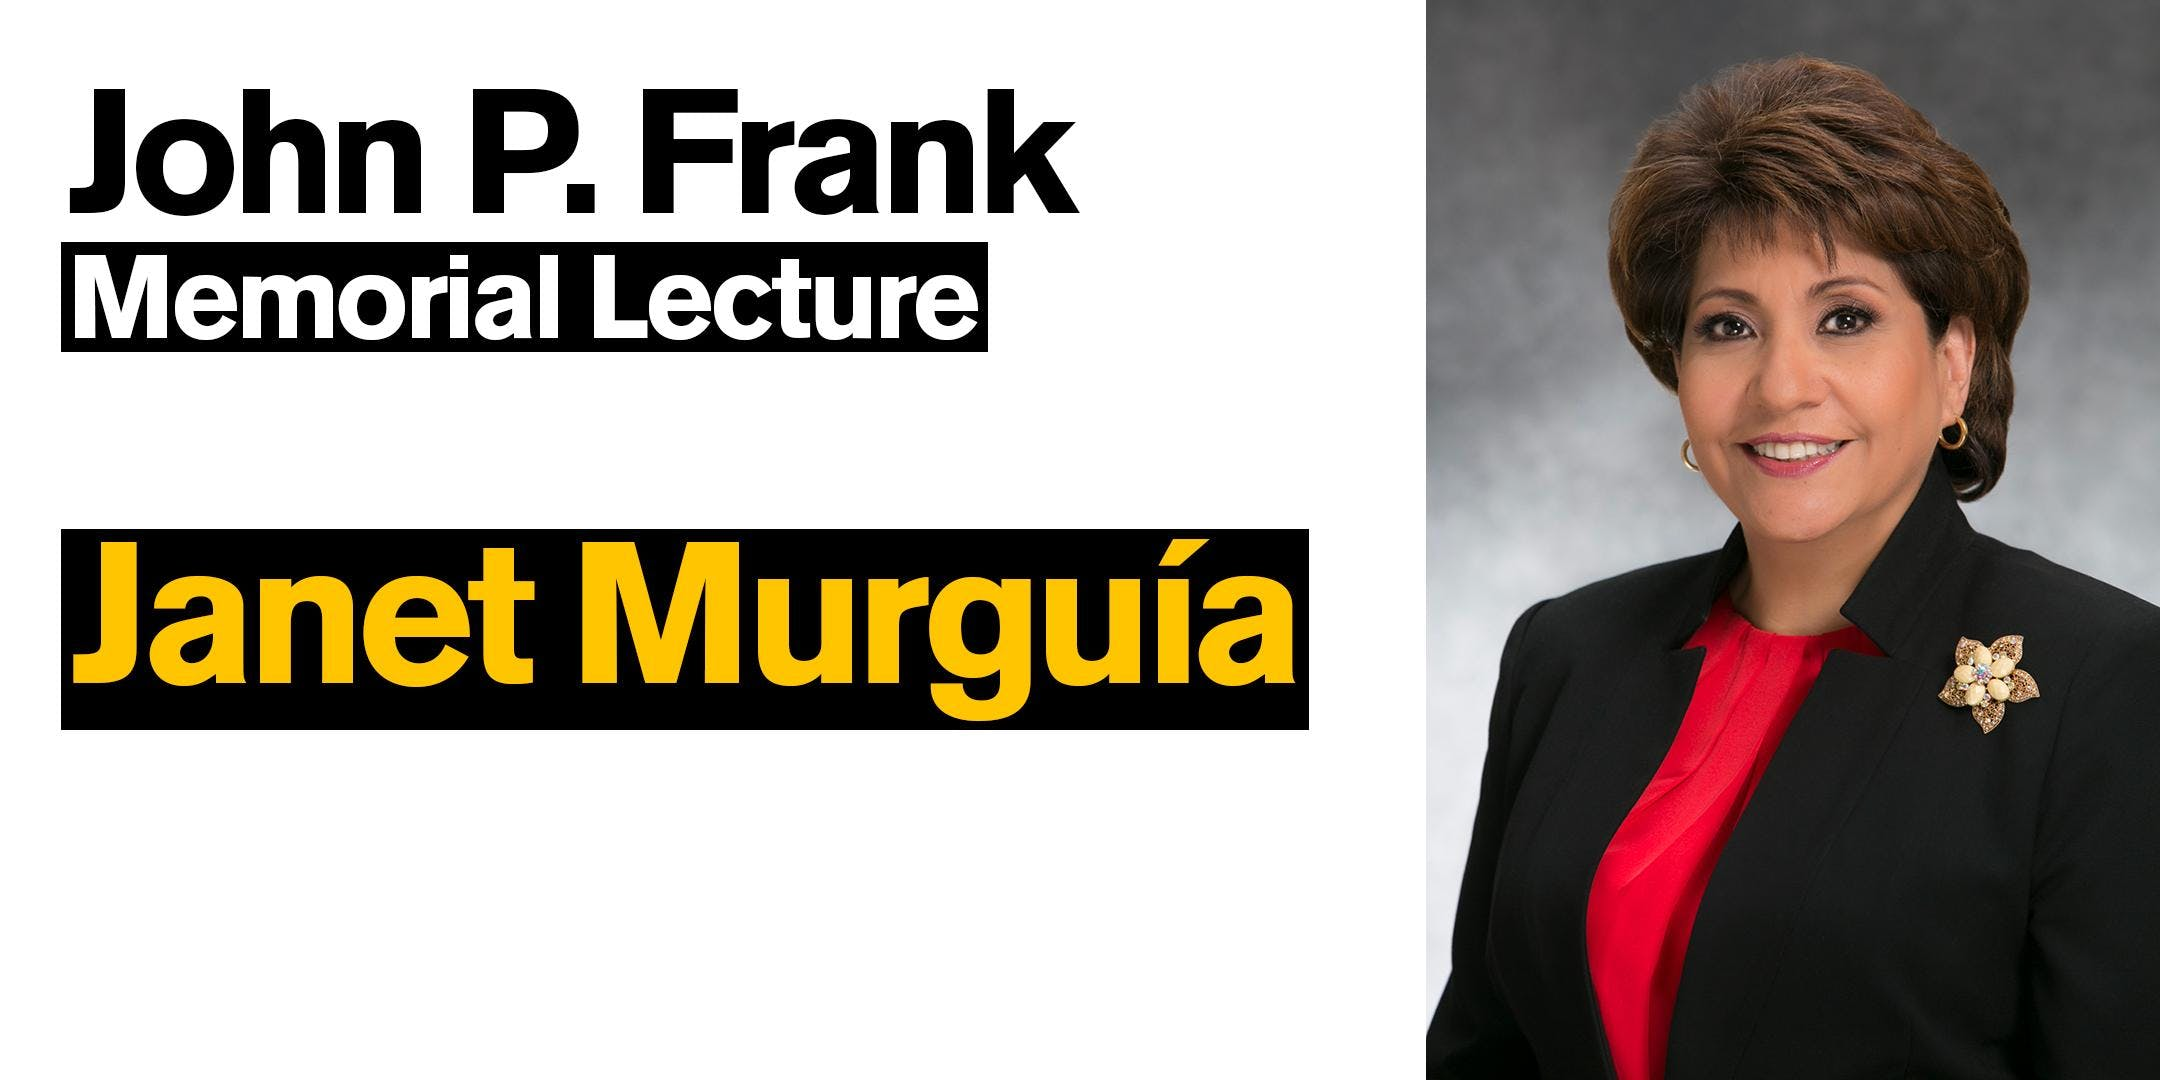 John P. Frank Lecture - Featuring Janet Murguia of UnidosUS